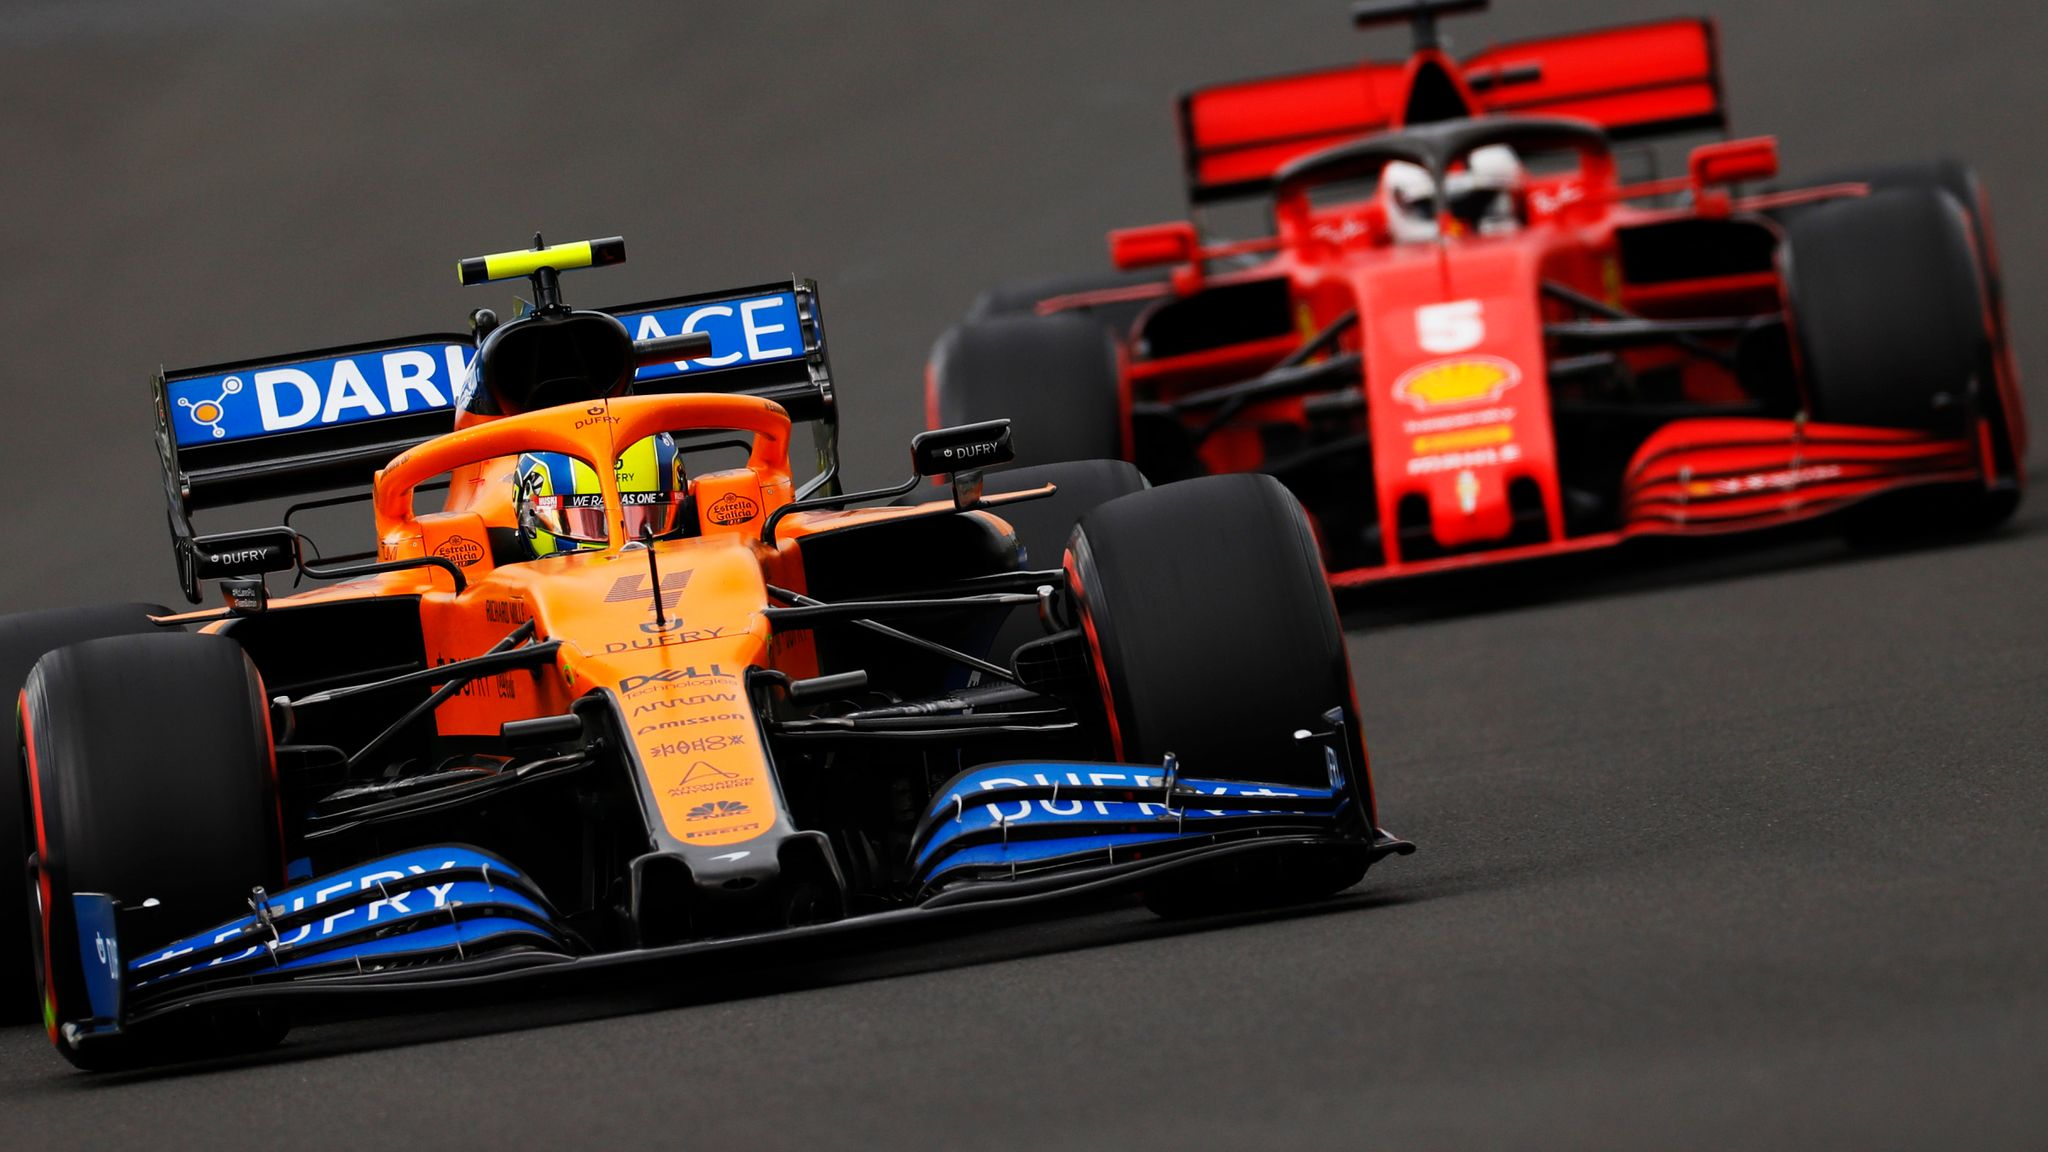 Ferrari Mclaren Williams First F1 Teams To Confirm Signing New Concorde Agreement F1 News